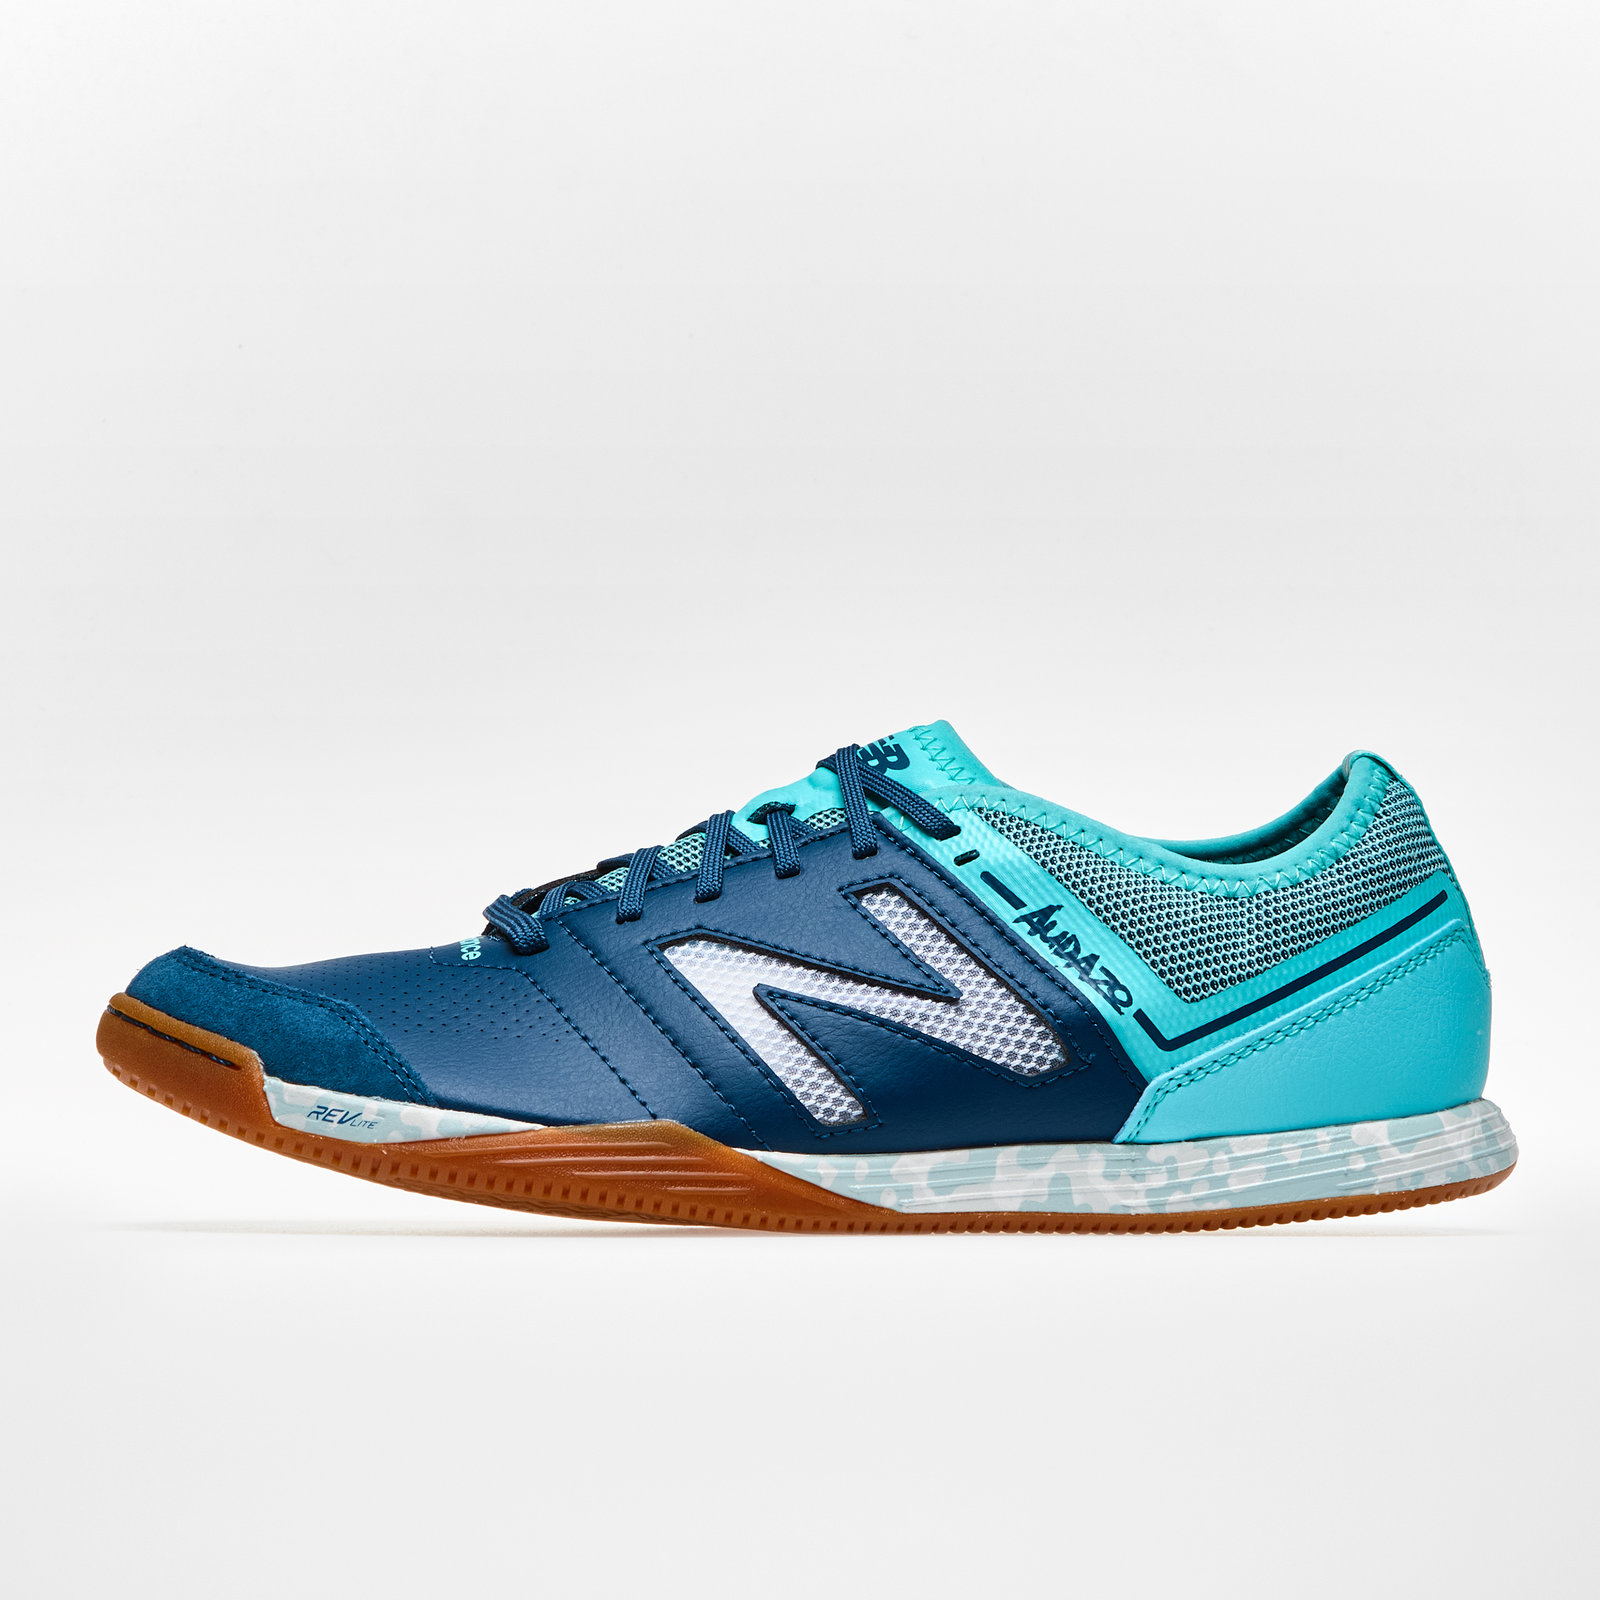 new balance mens indoor football trainers